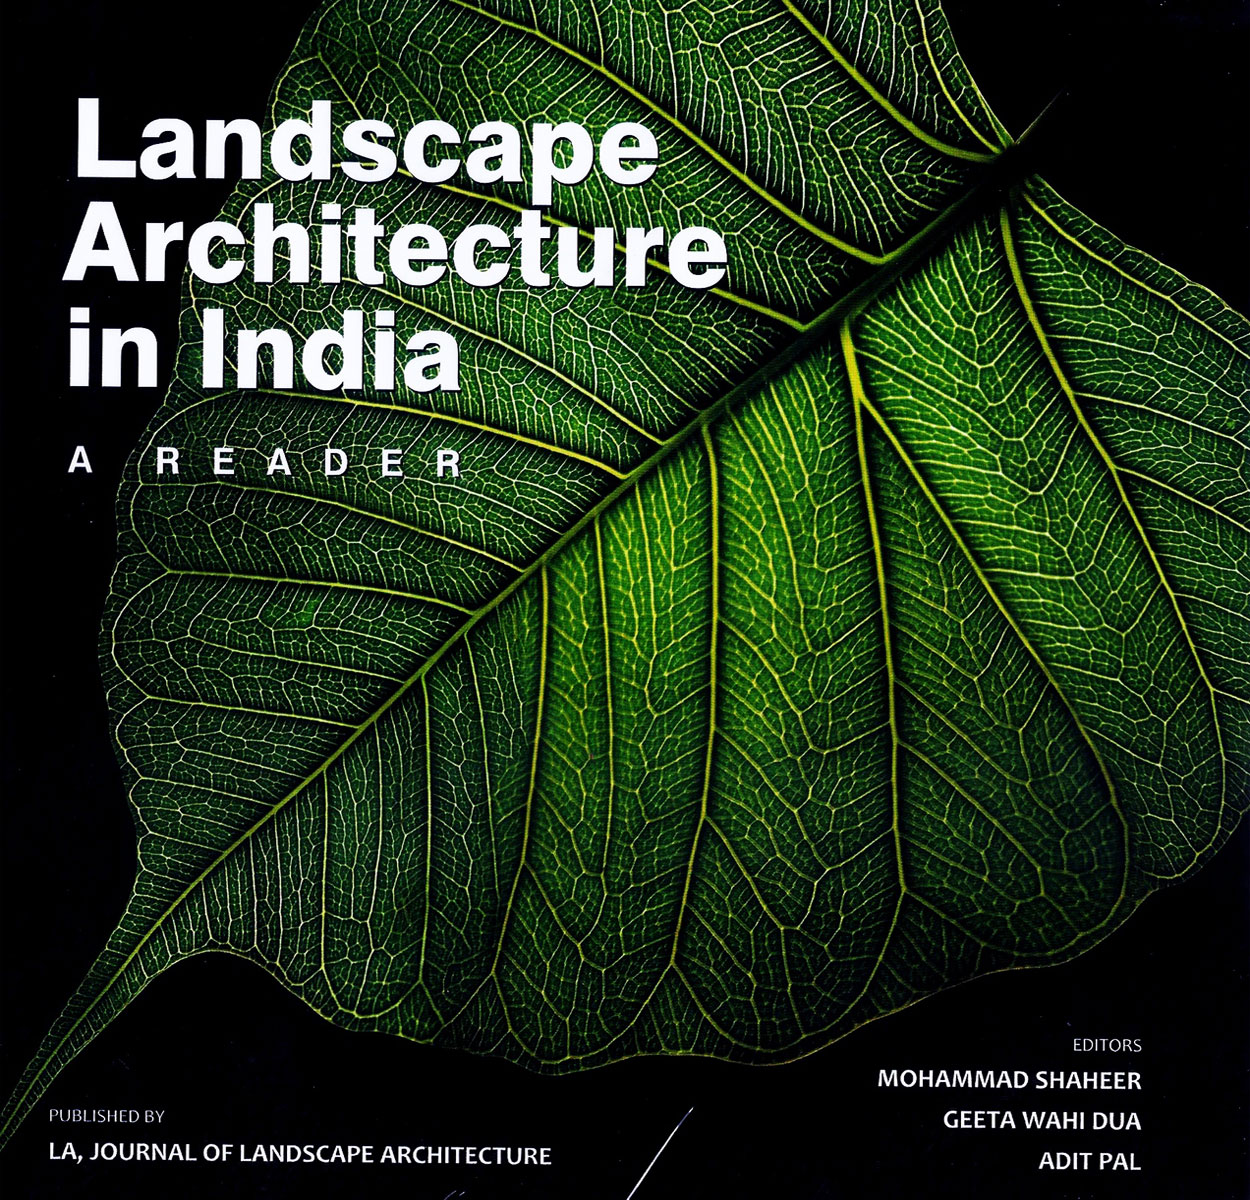 Kishore d pradhan architecture landscape for Landscape architects in india